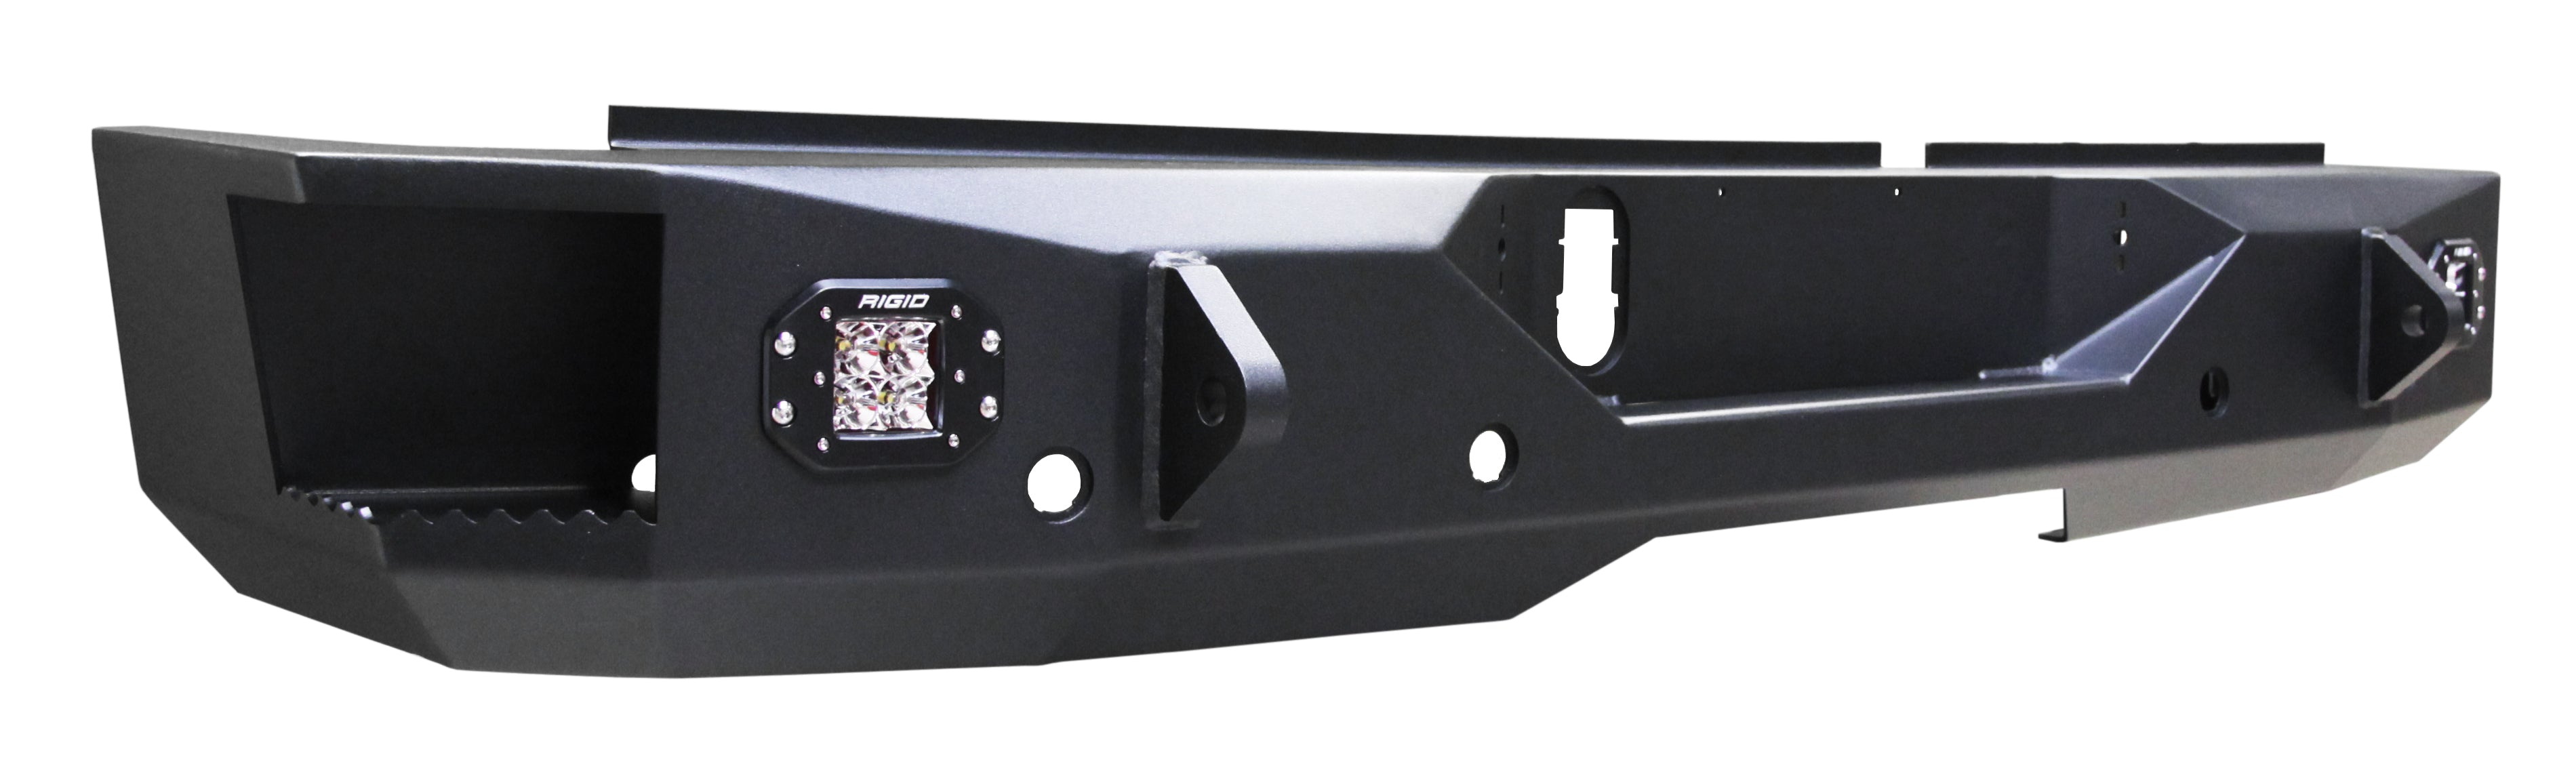 Chevrolet - 2500/3500 (2011-2014) Rear Bumper